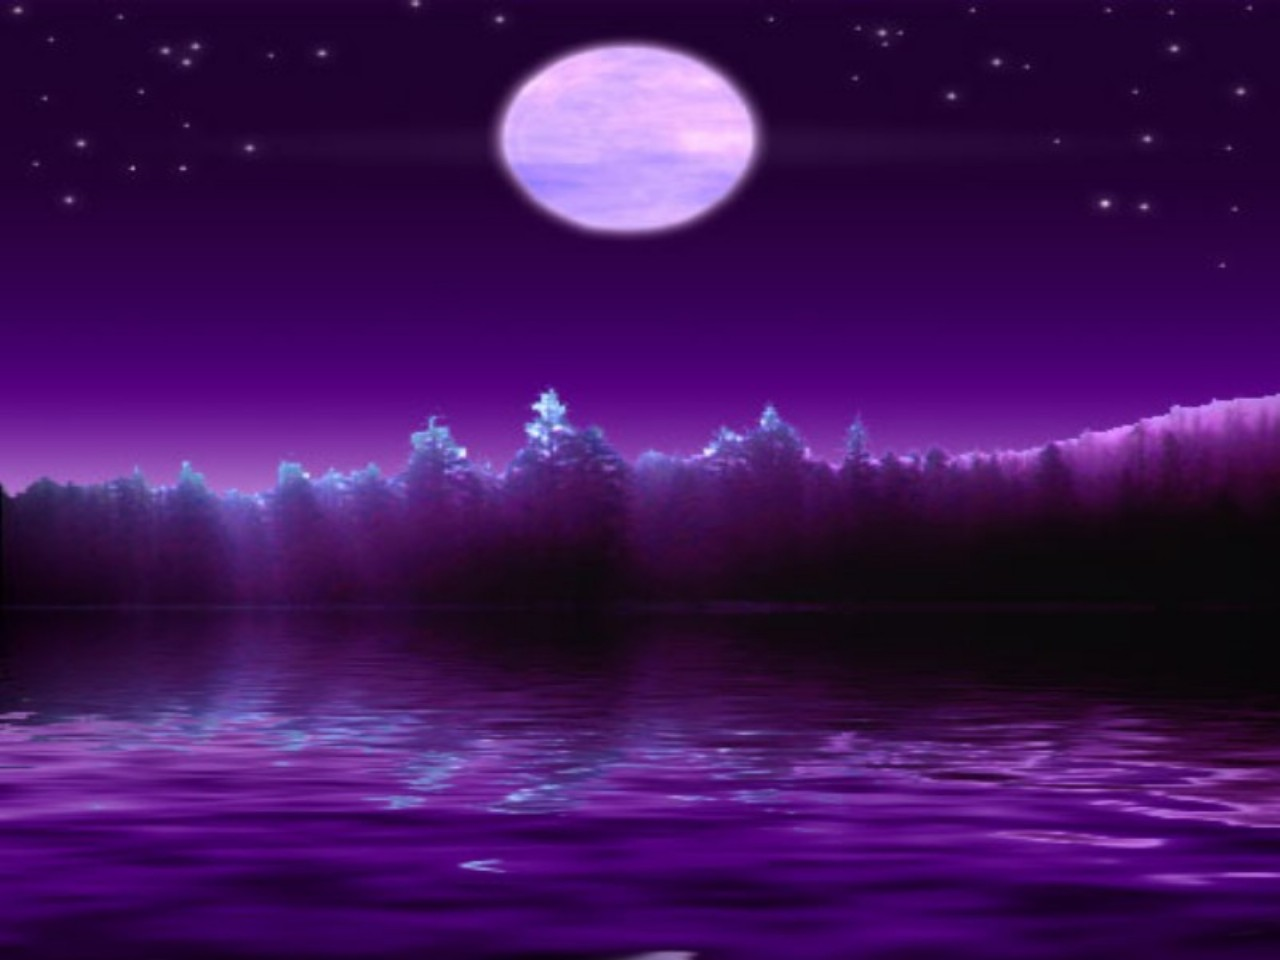 Purple Night Wallpaper